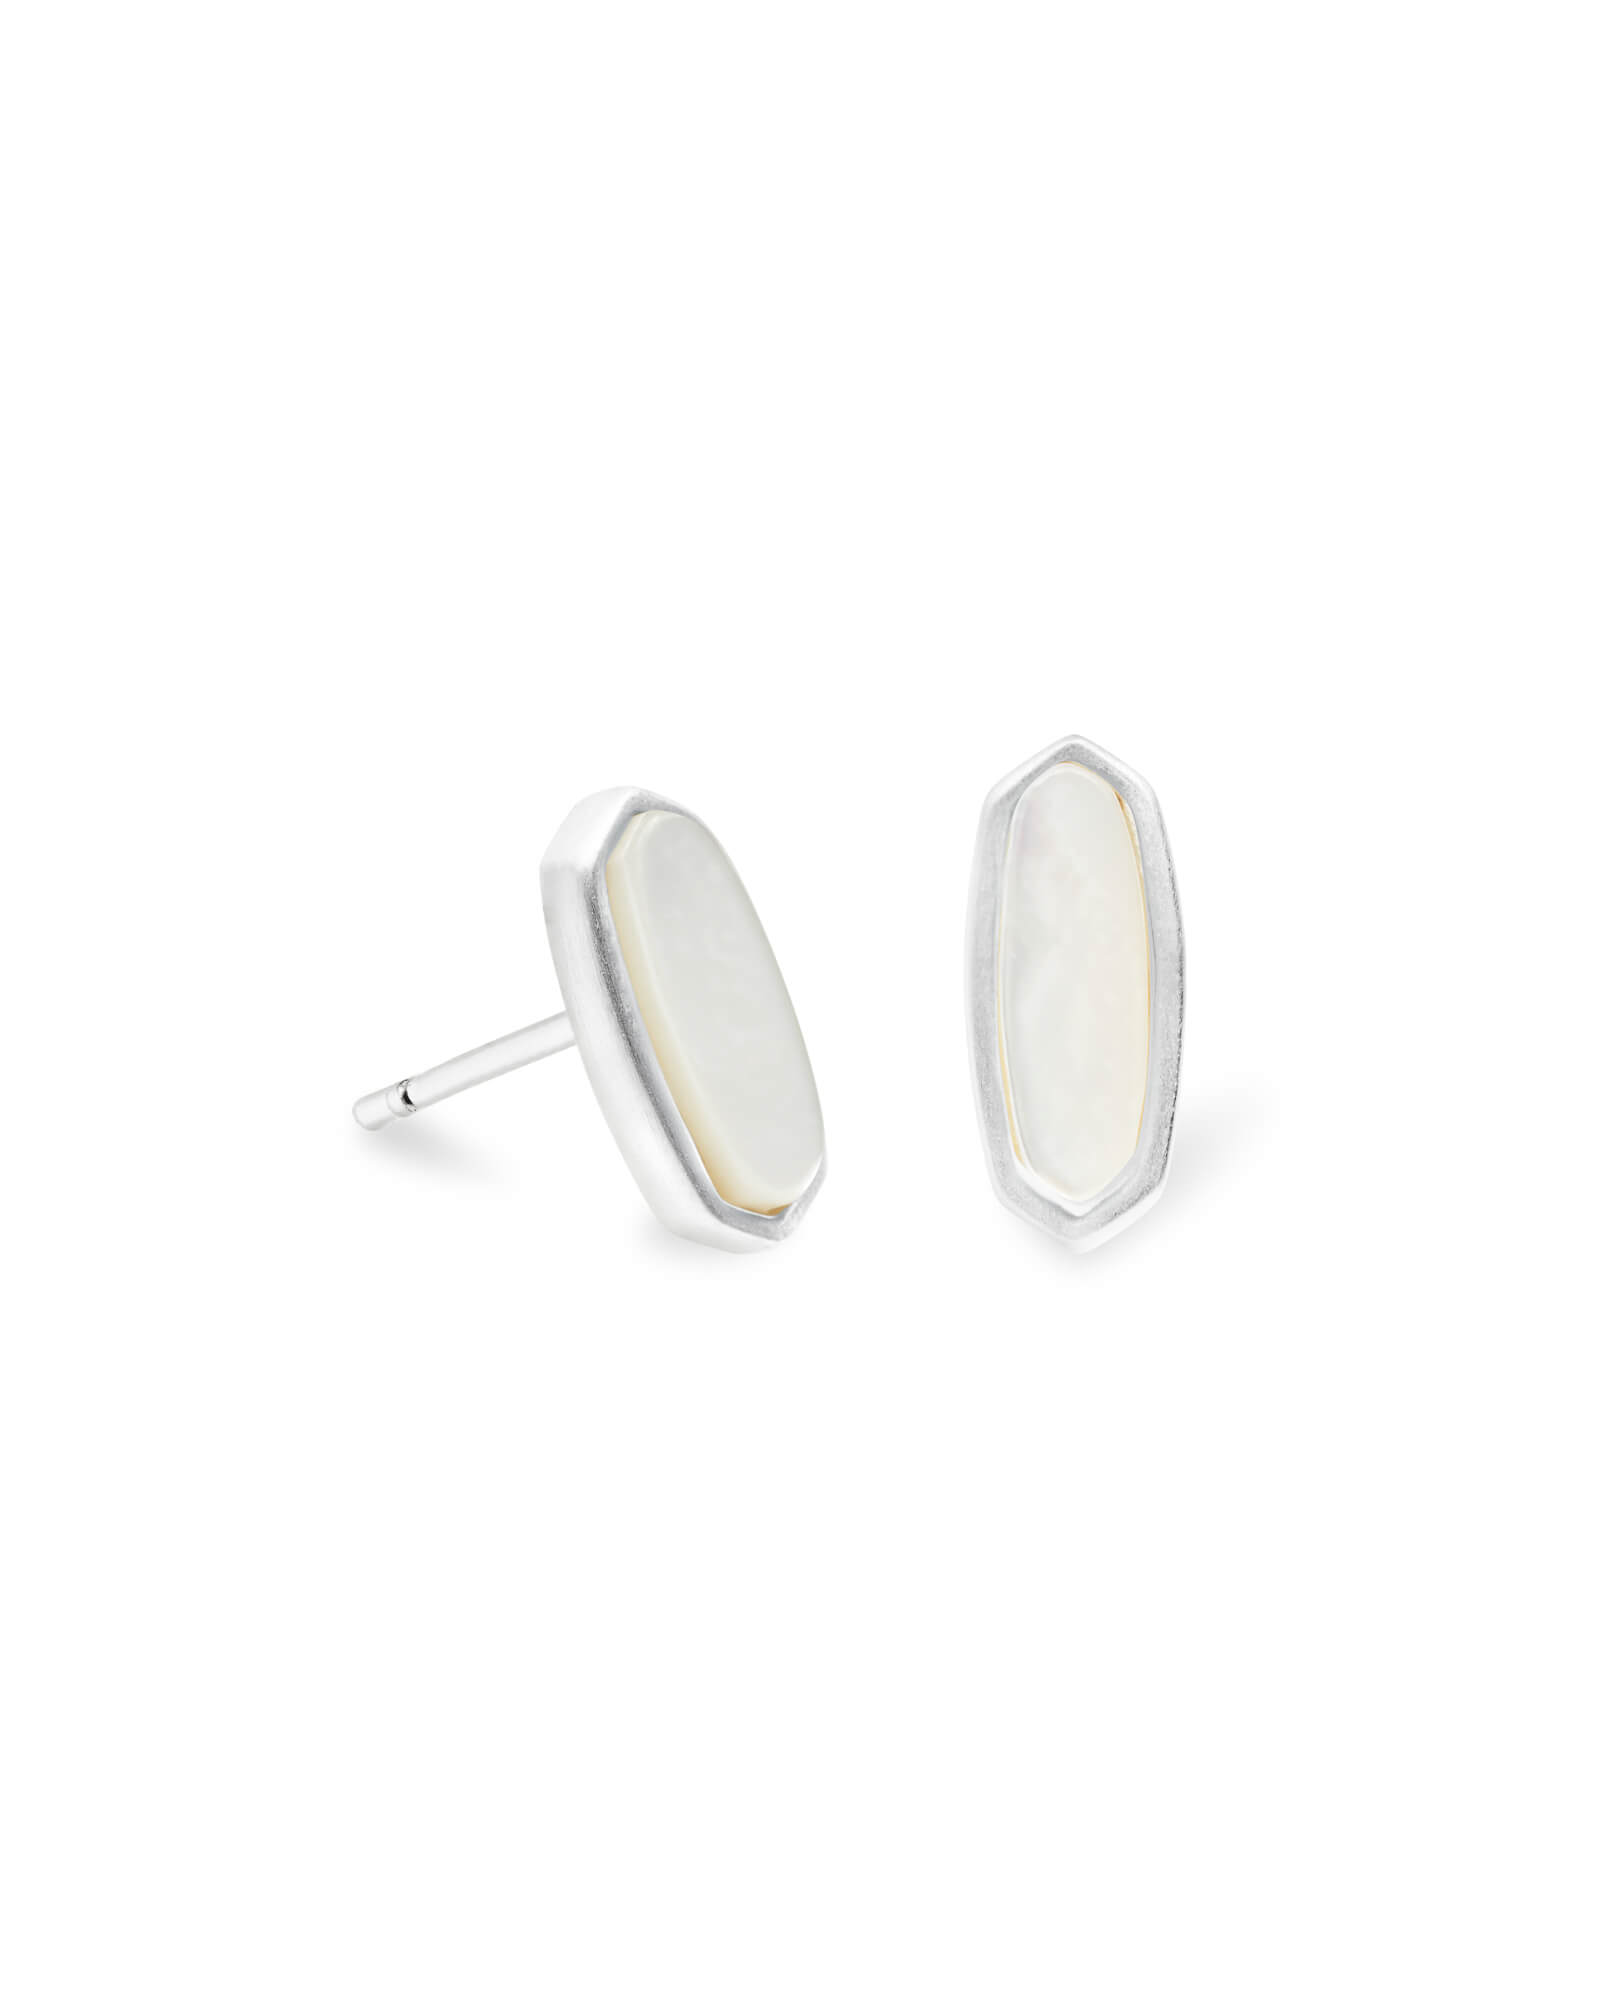 Mae Bright Silver Stud Earrings in Ivory Pearl